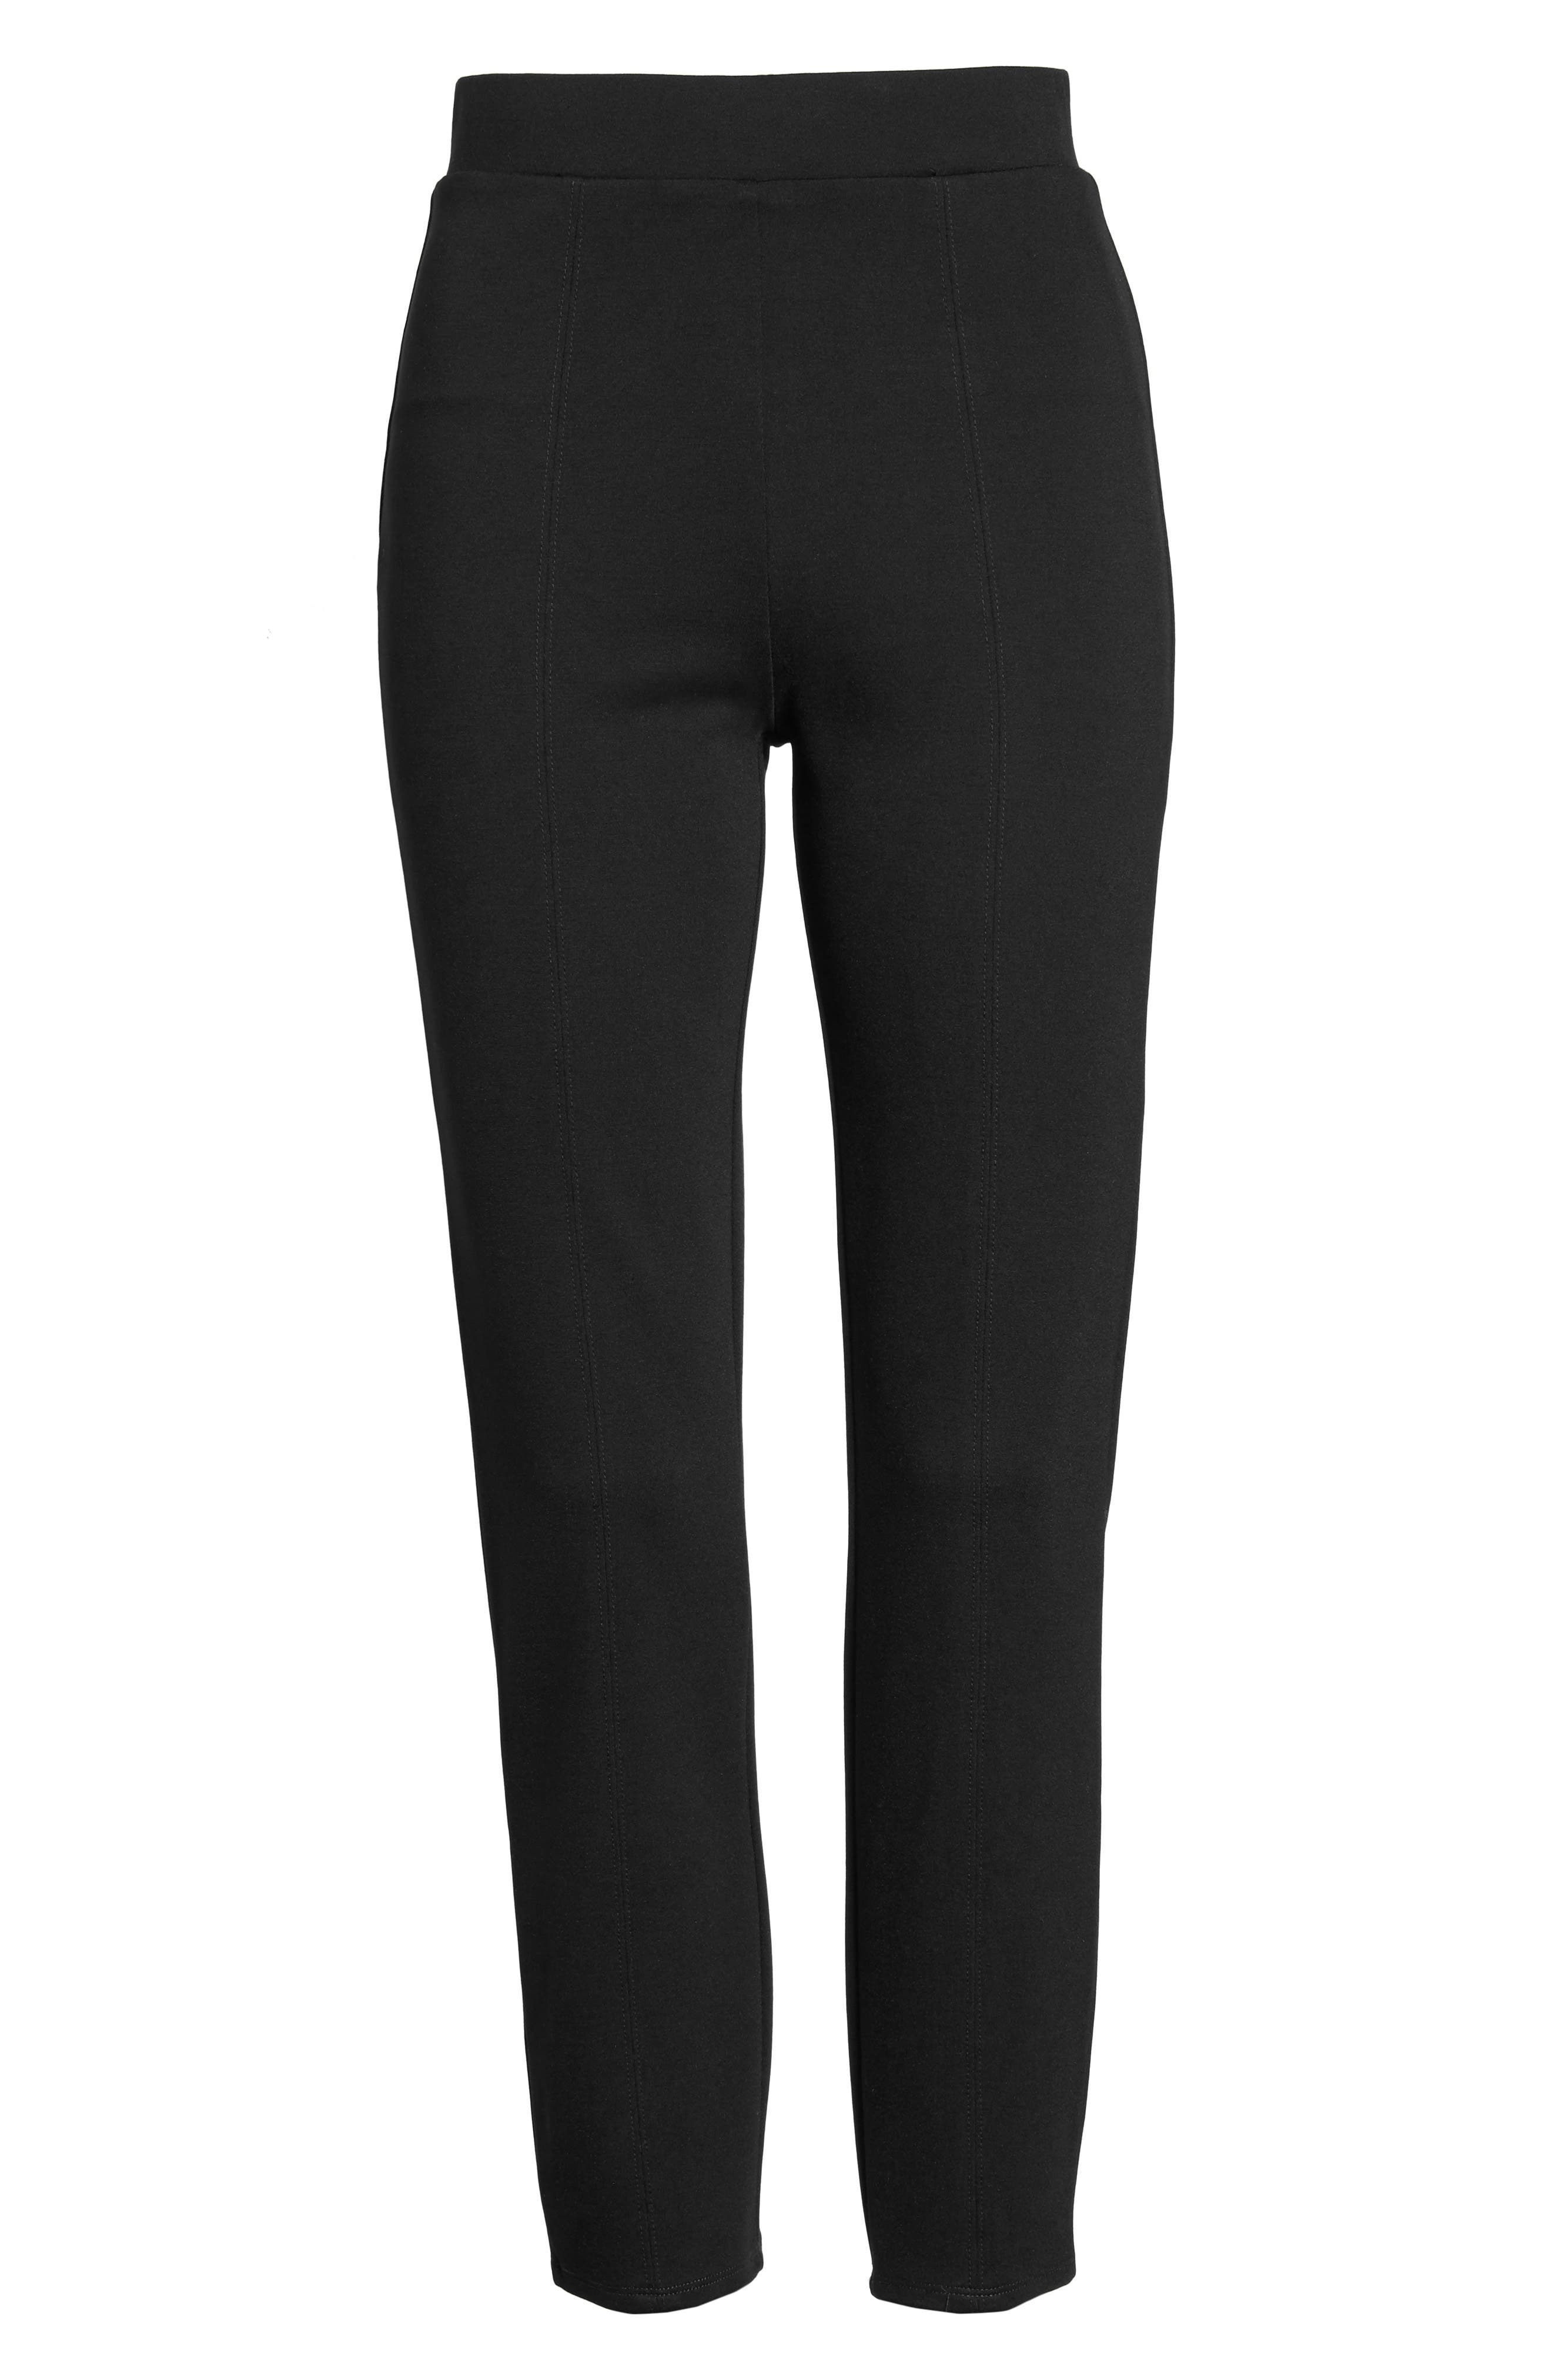 Macklin Ponte Leggings,                             Alternate thumbnail 6, color,                             Black